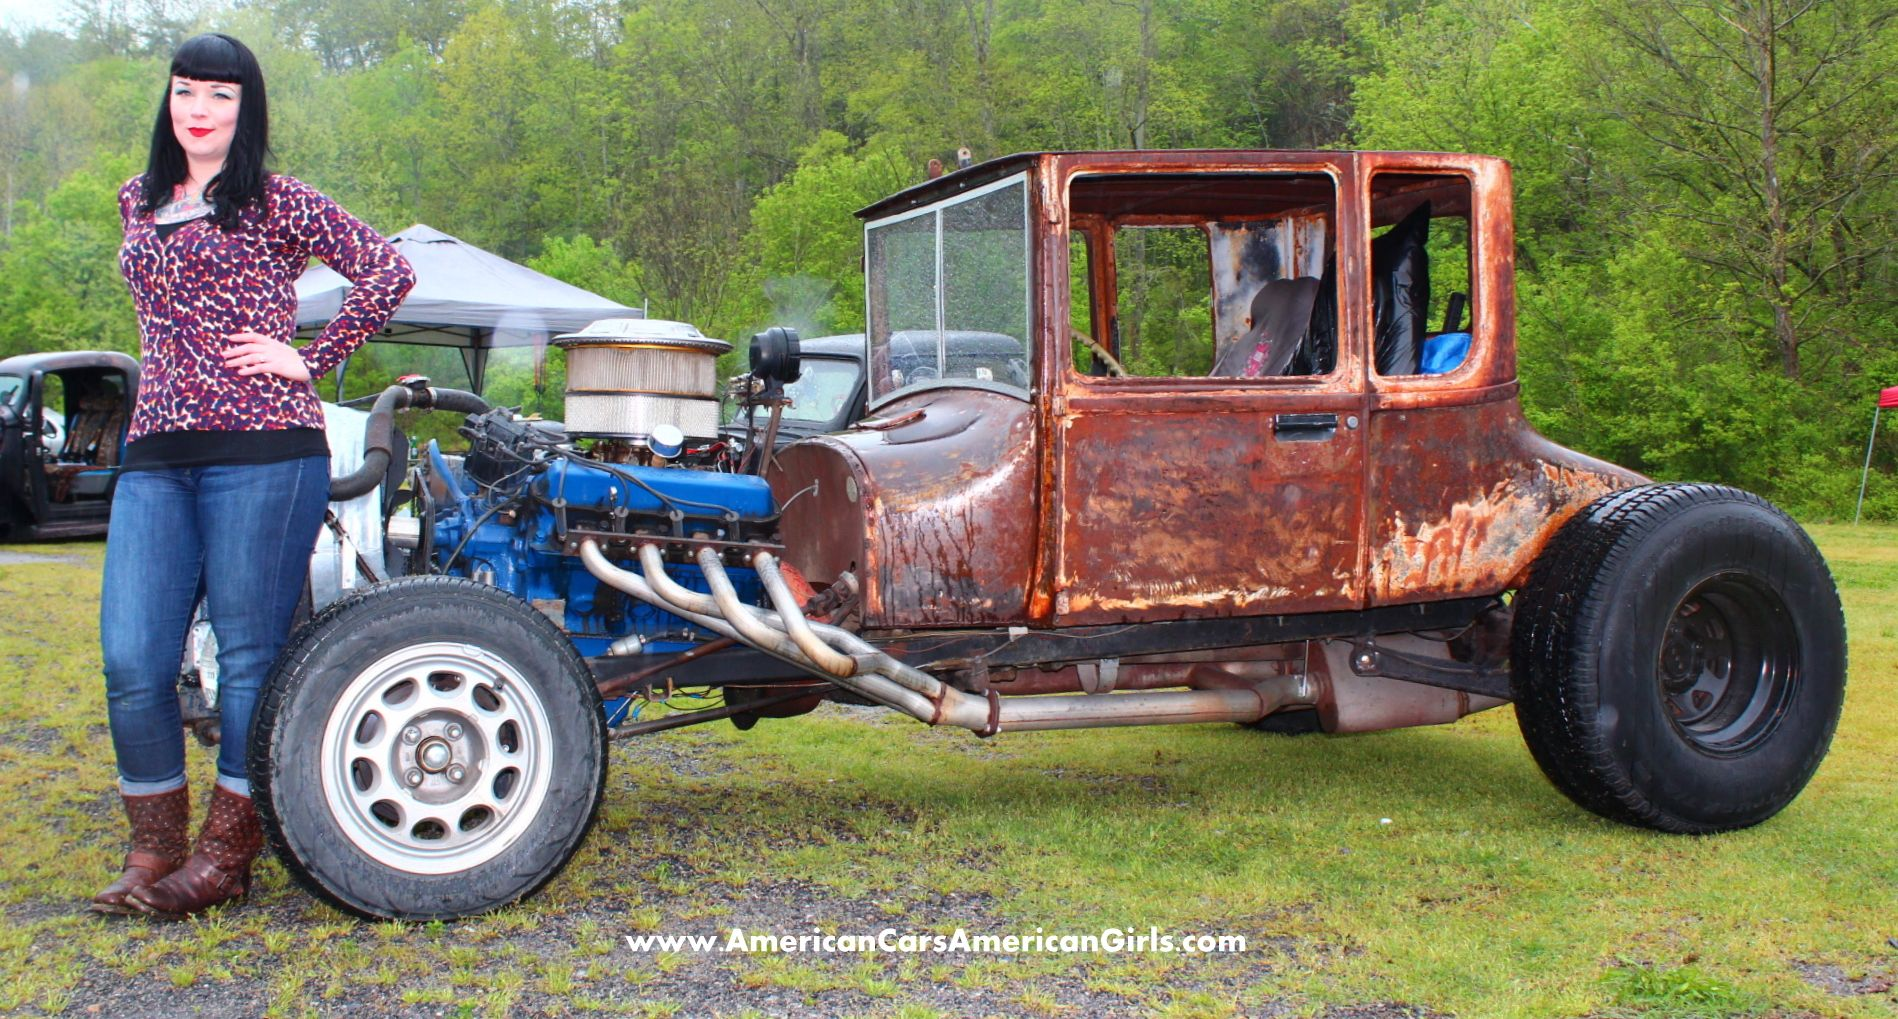 RatRod #Rat #Rod #Rust Spray that engine with some lacquer thinner ...